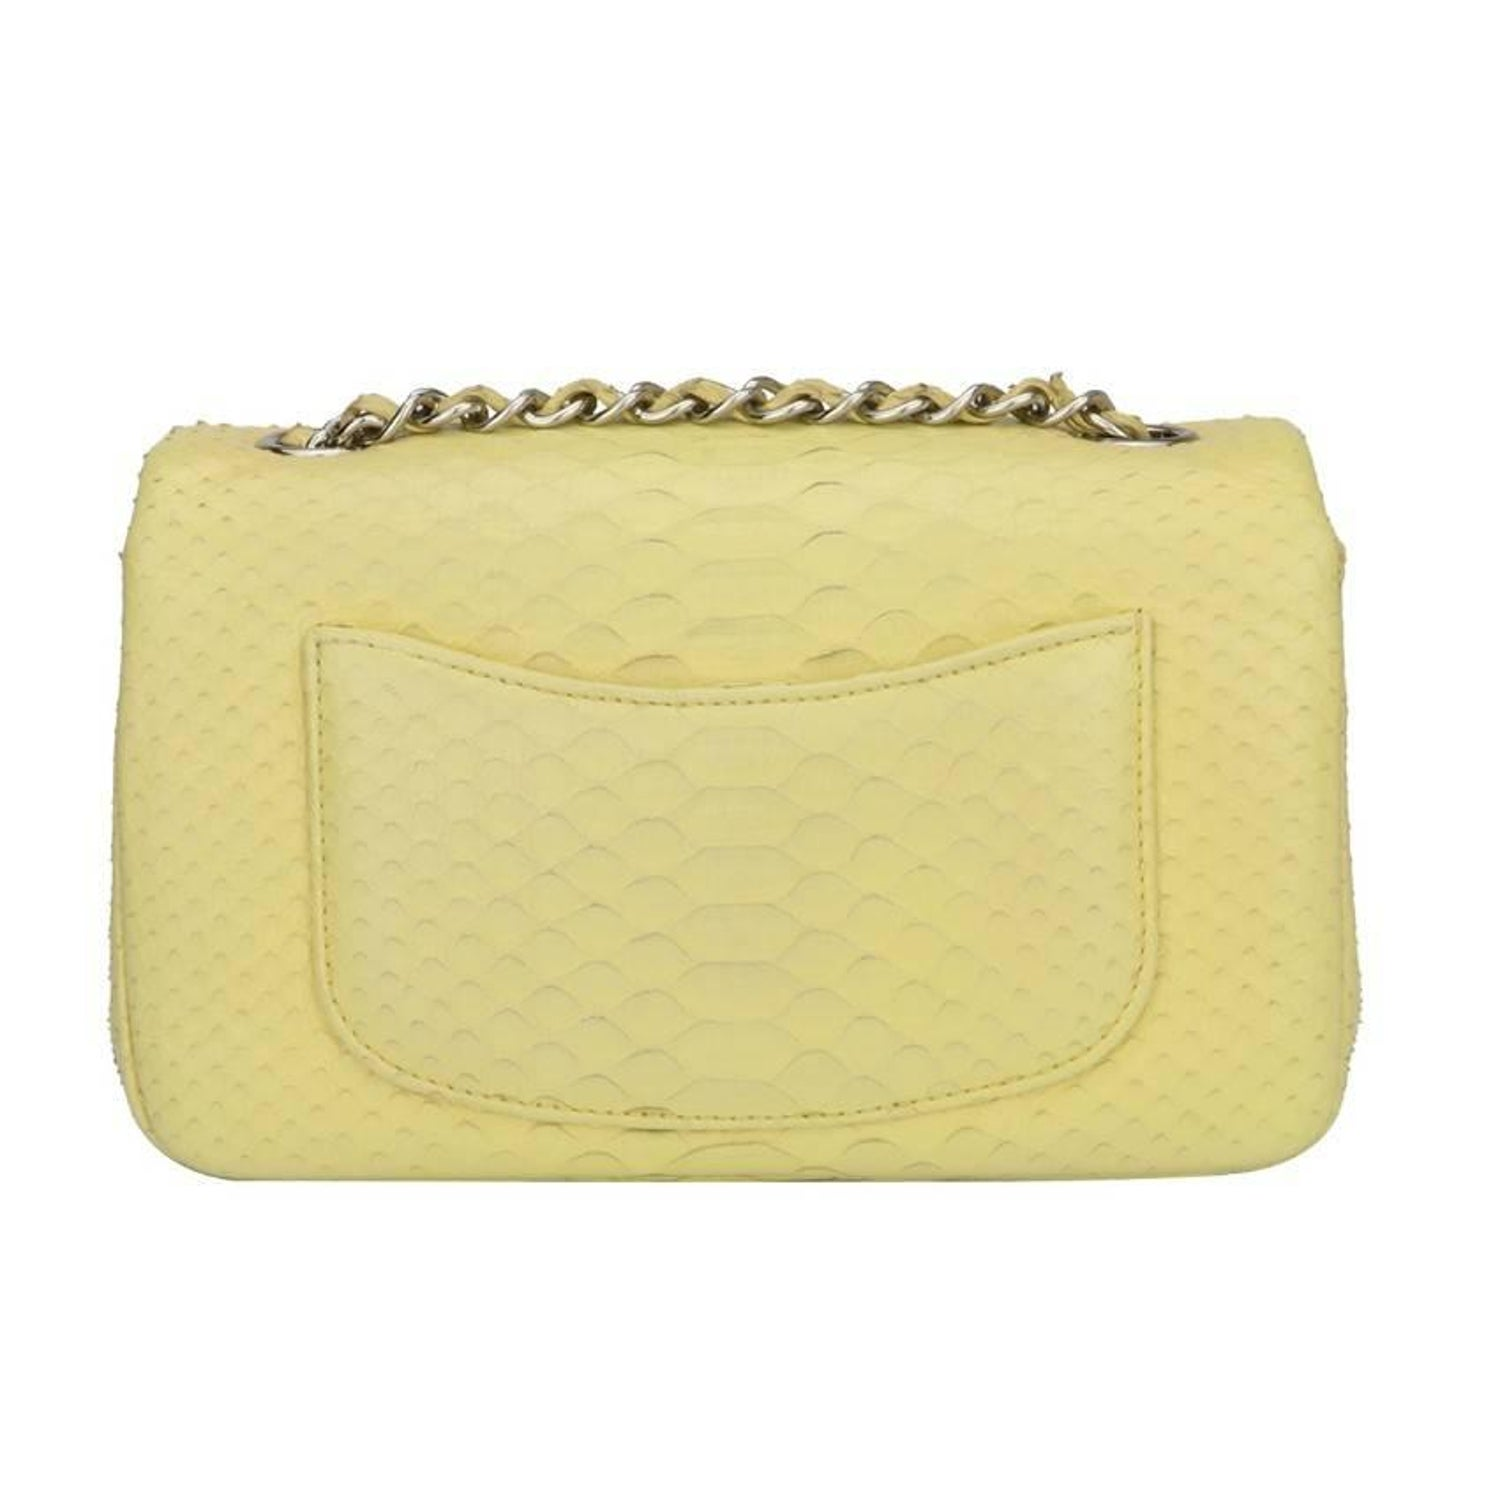 faf5219bfa39e2 CHANEL Rectangular Mini Yellow Python Bag For Sale at 1stdibs